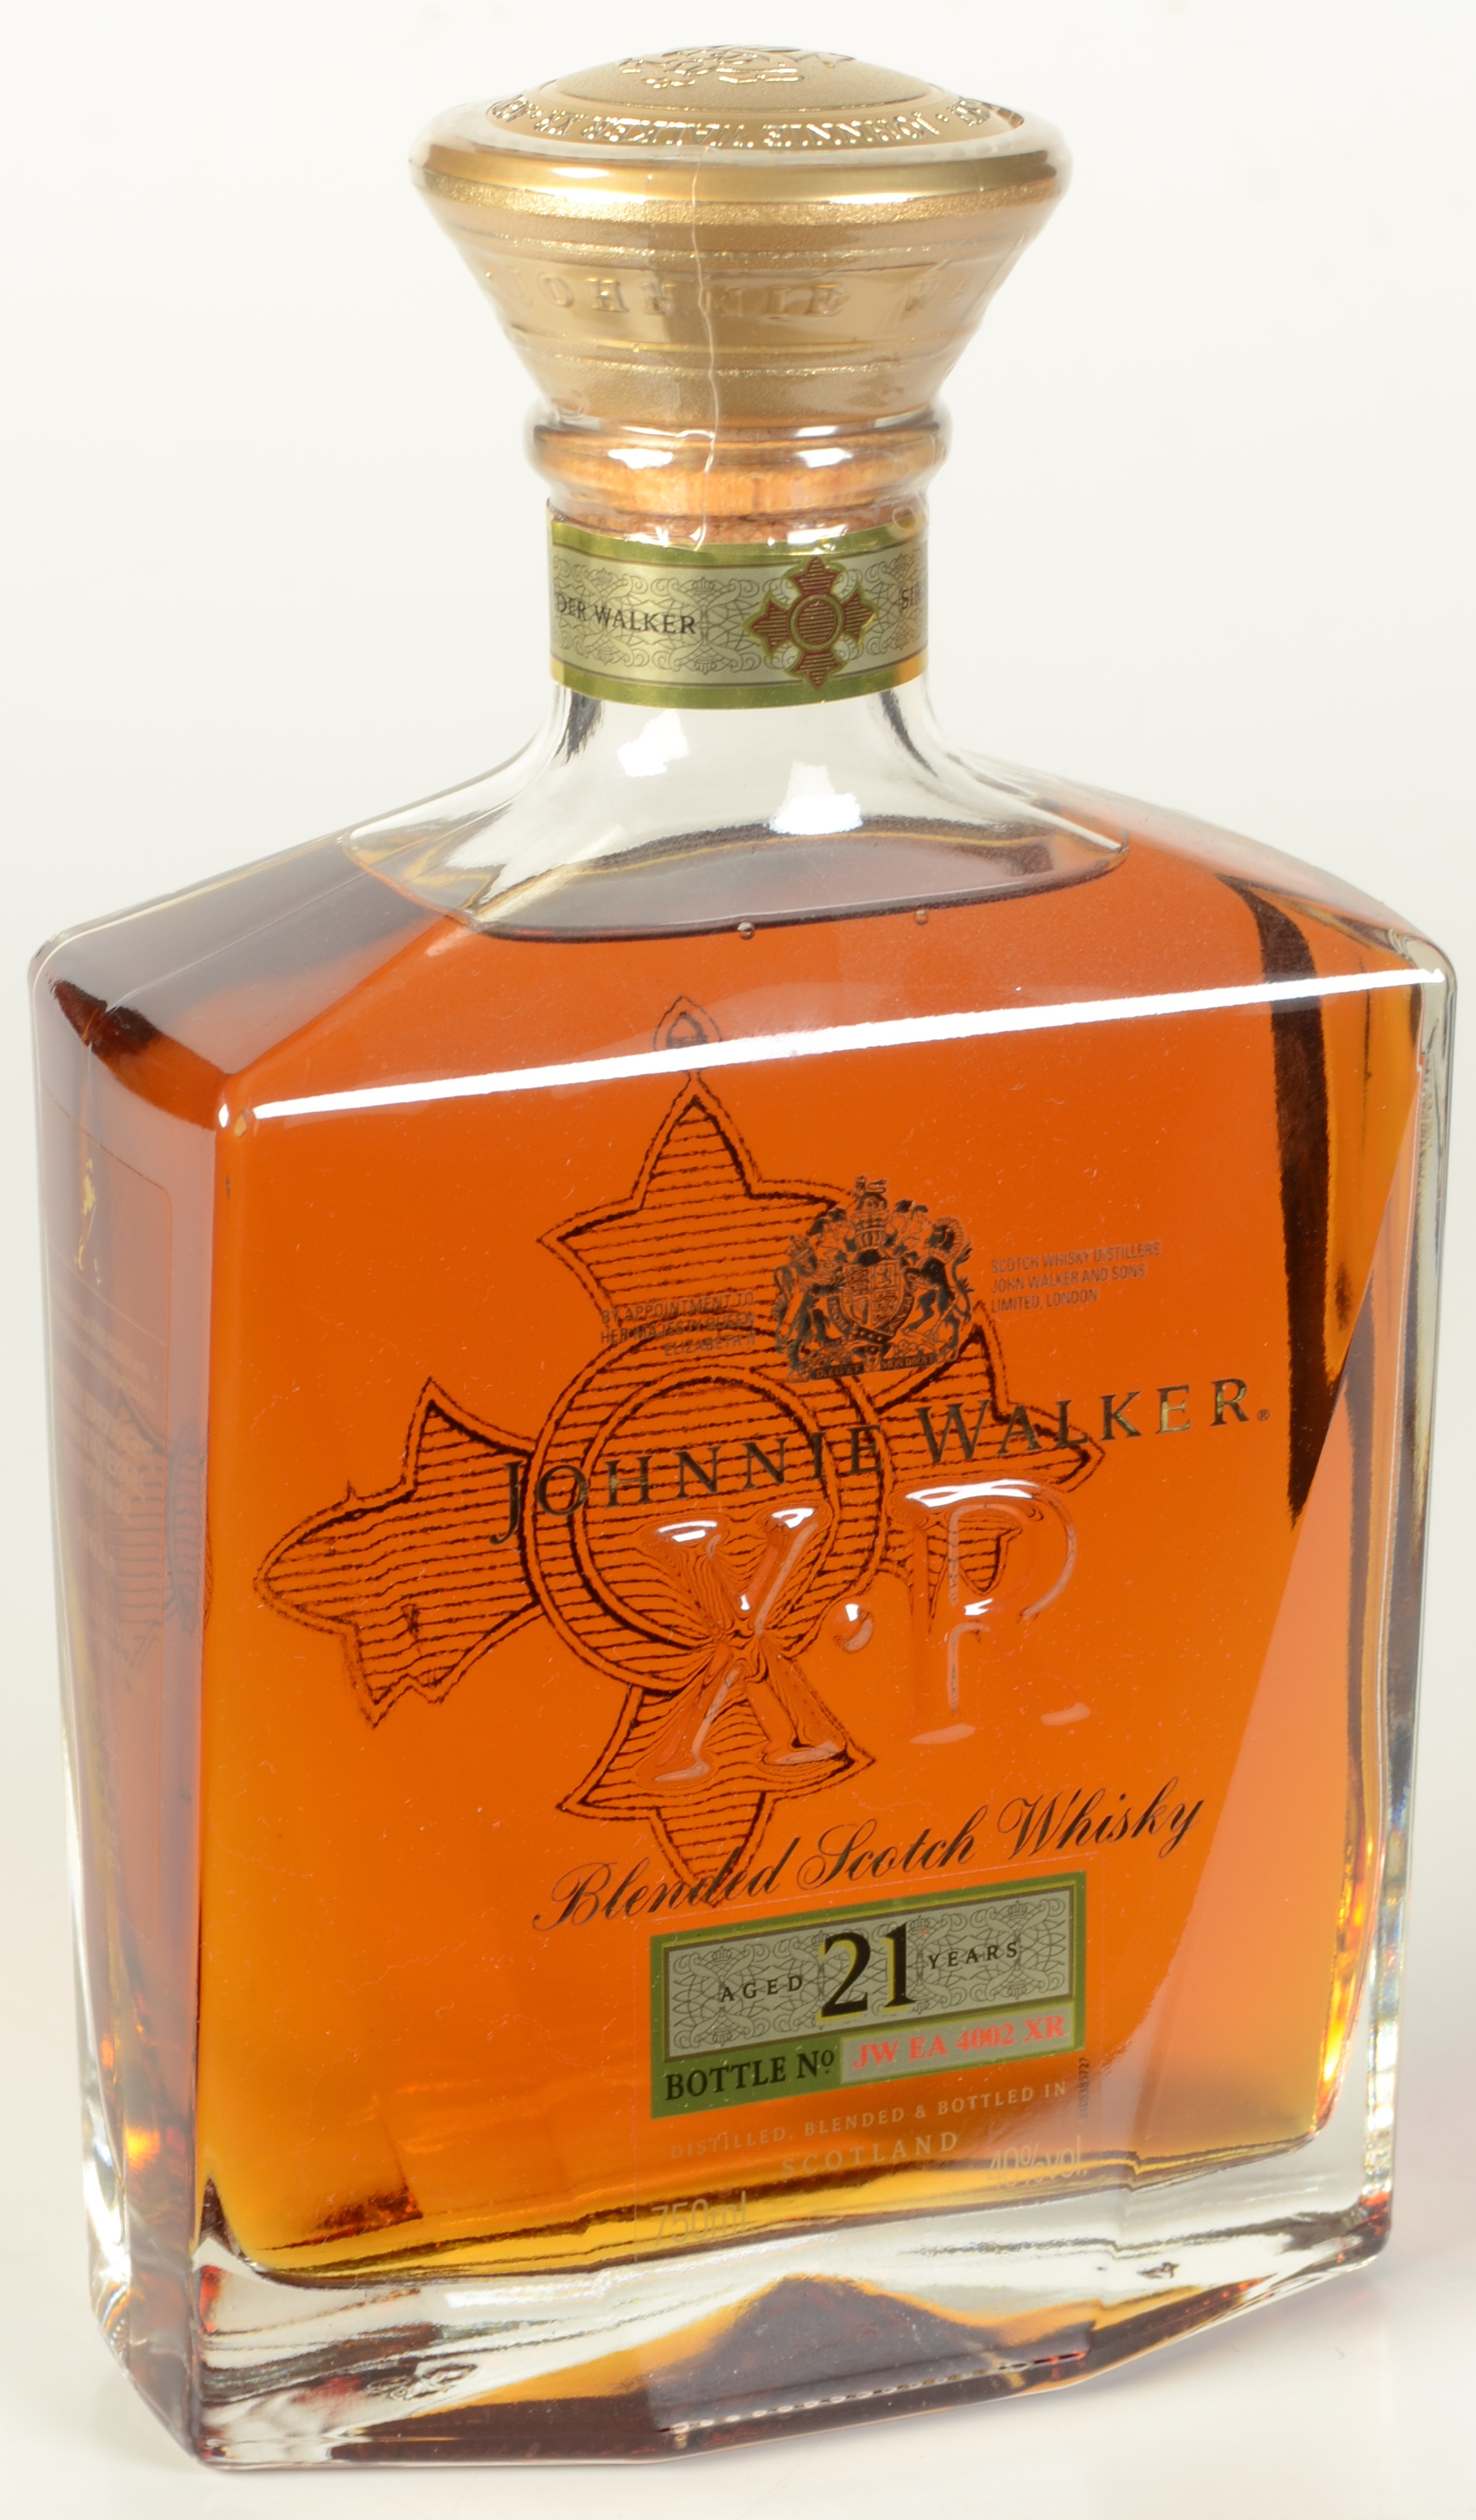 Lot 52 - A Johnnie Walker 21 year old XR blended Scotch Whisky, bottle no.